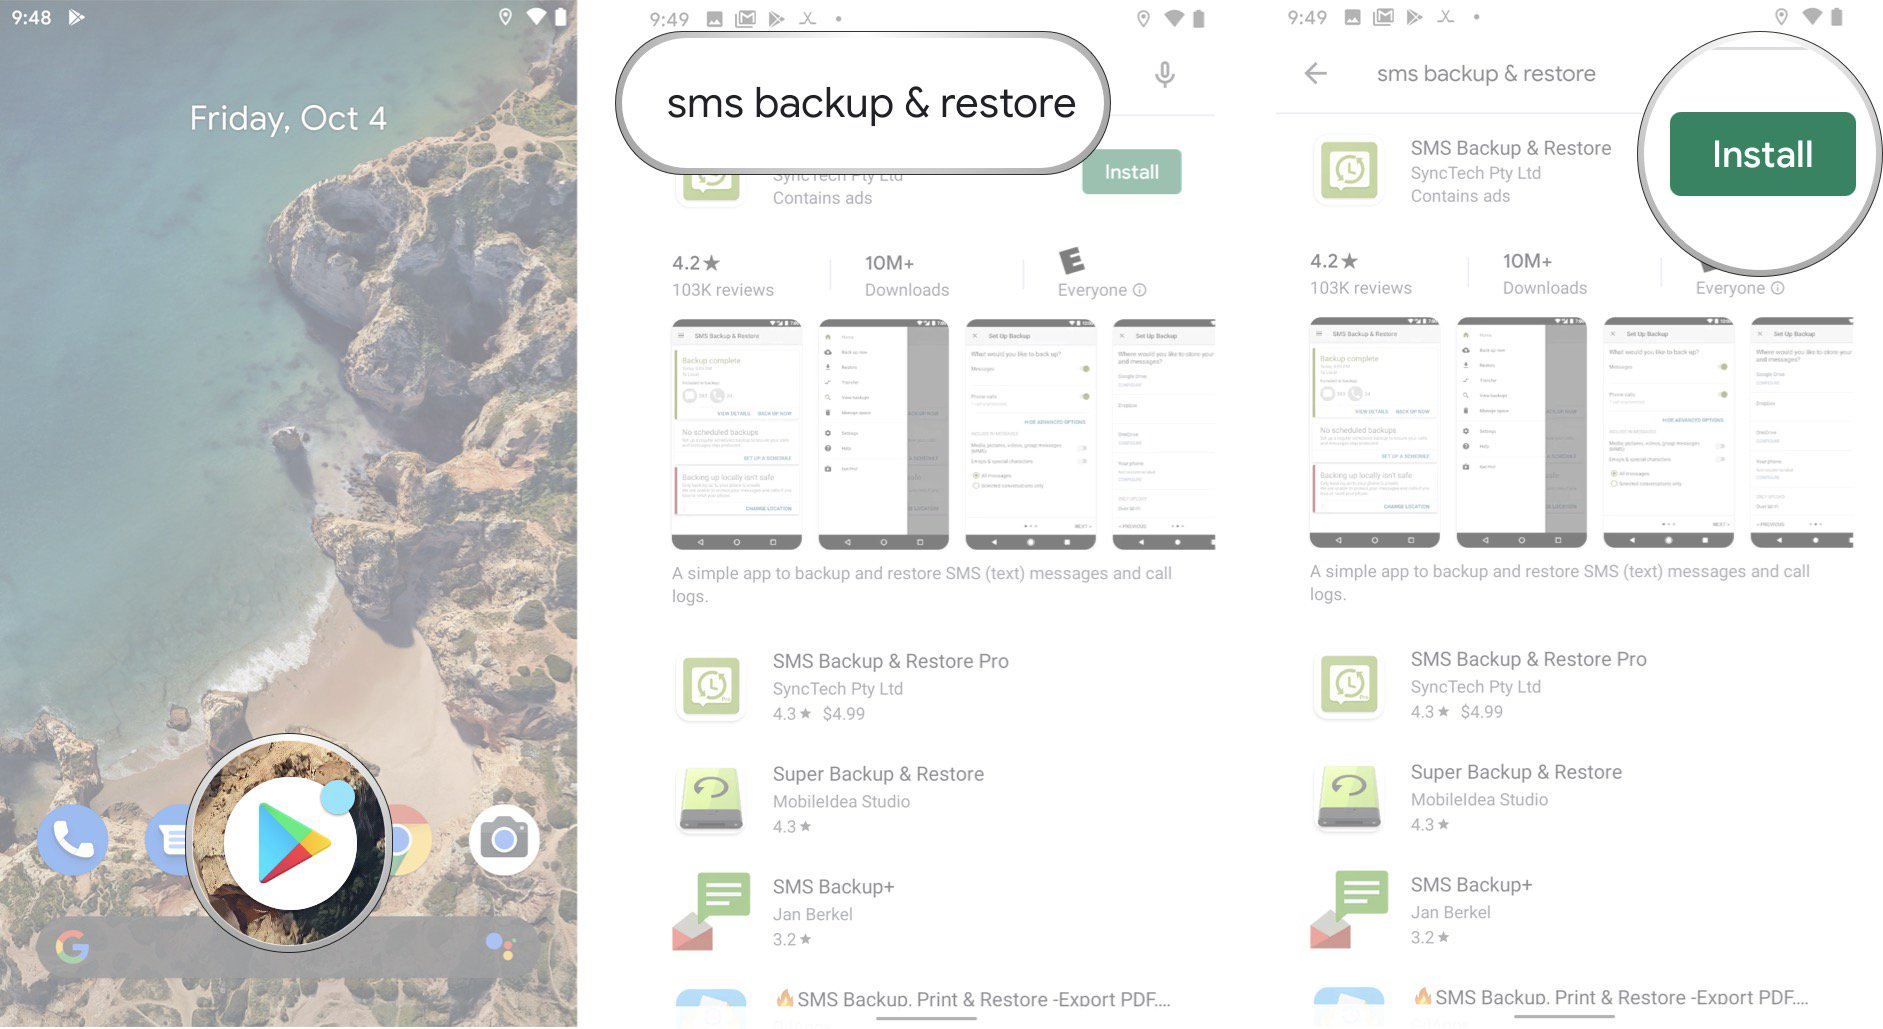 Launch the Google Play Store from your home screen or app drawer, Tap the search bar and search for SMS Backup and Restore, then tap the free SMS Backup and Restore app, which should be the top result